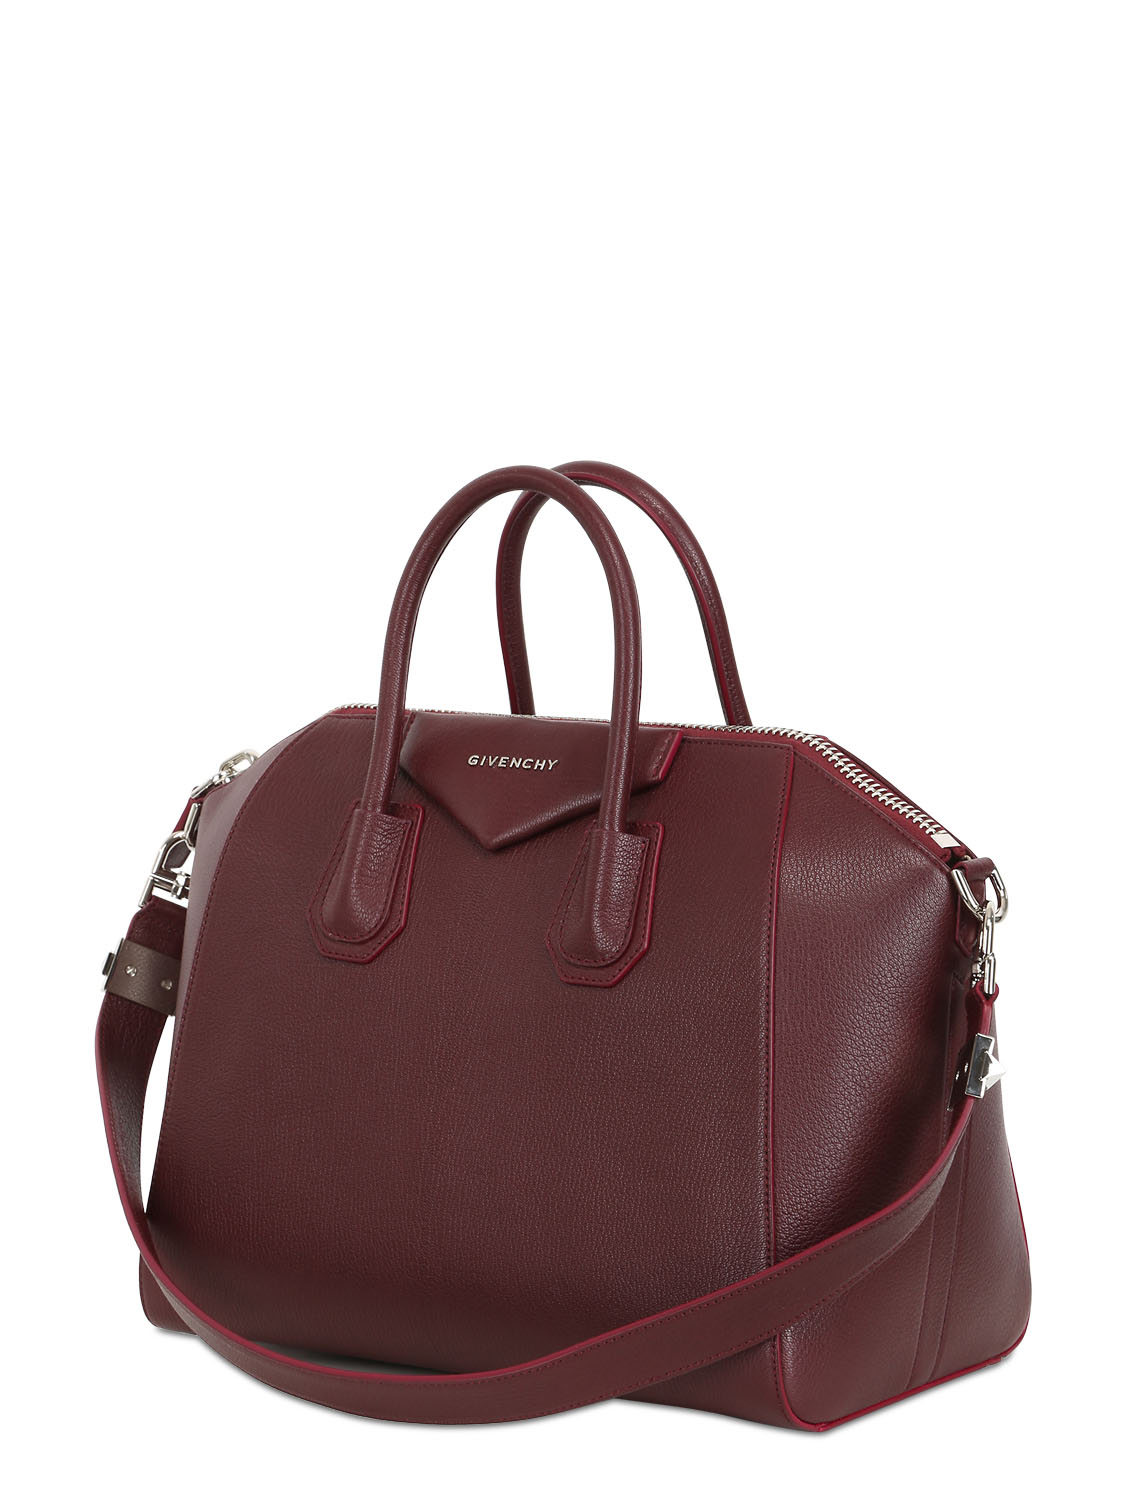 8c74dce7a6 Lyst - Givenchy Antigona Leather Tote in Red